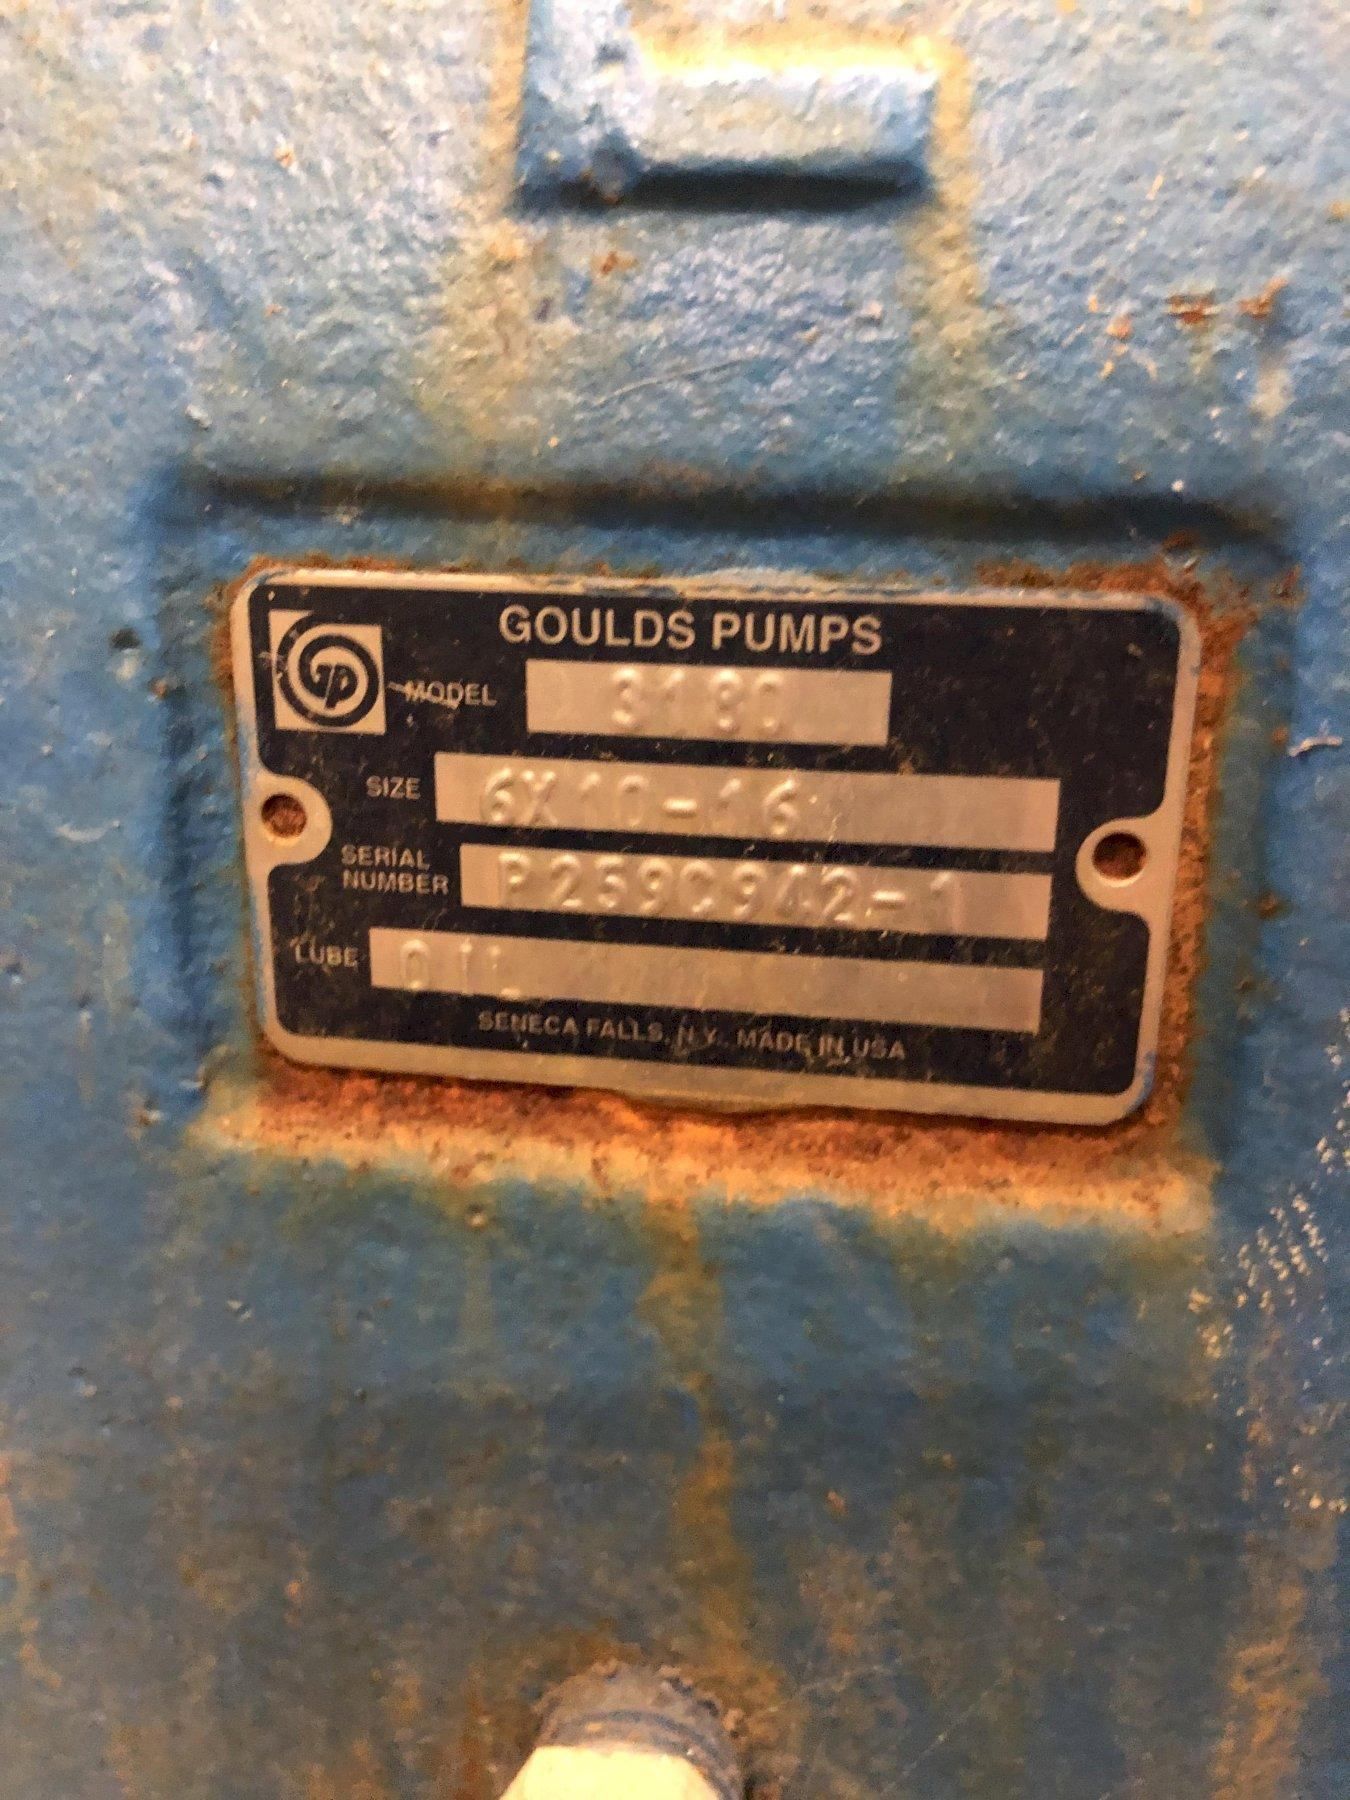 a makeup pump and 200hp motor with Goulds model 3180 pump size 6x10-16 s/n p259c942-1